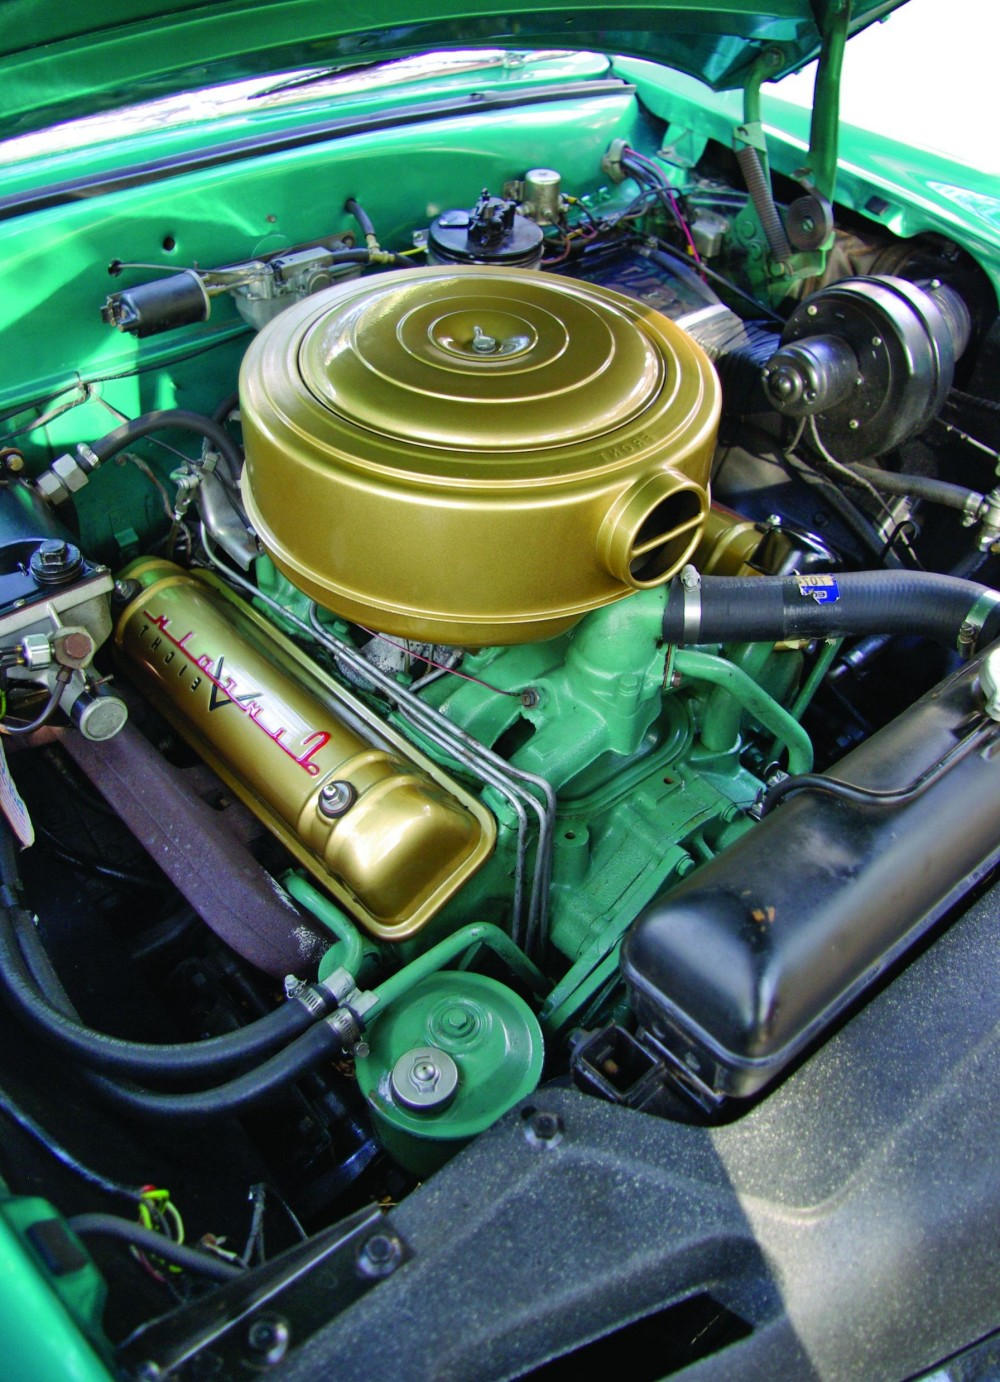 medium resolution of the gold finish on the valve covers and air cleaner complements the green painted engine block even after 61 000 miles the untouched 341 cu in v 8 engine